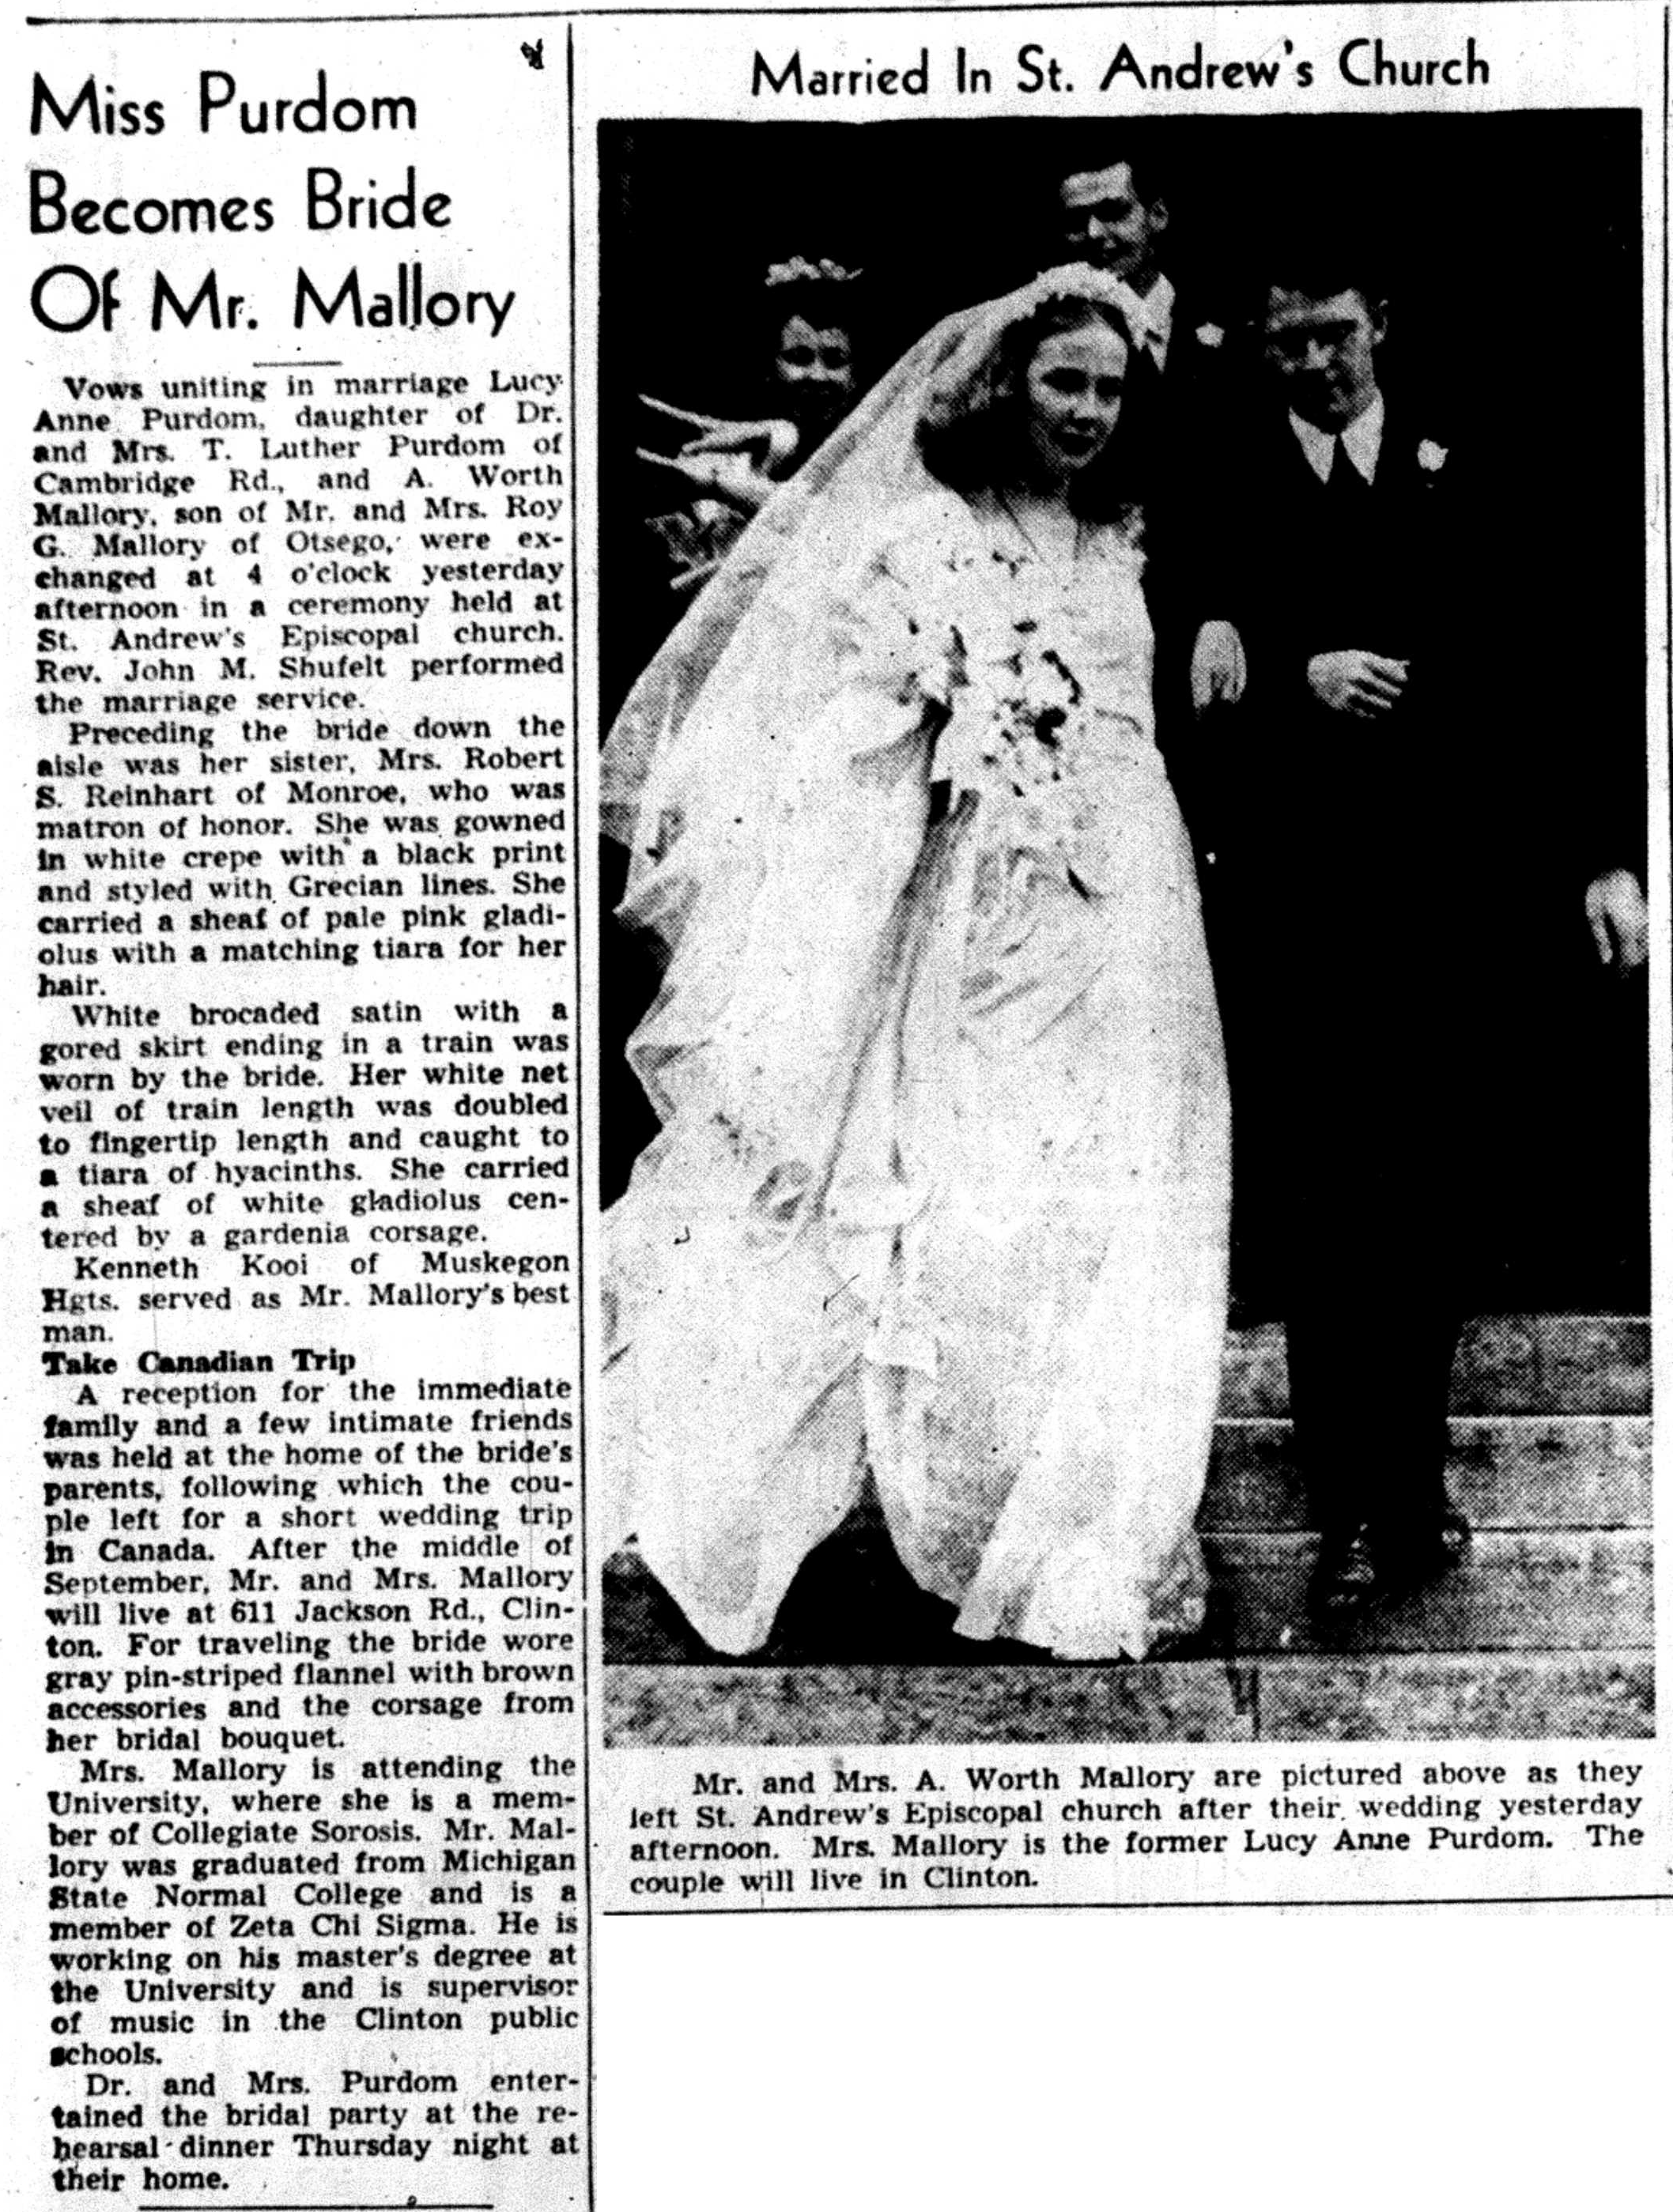 Miss Purdom Becomes Bride Of Mr. Mallory image